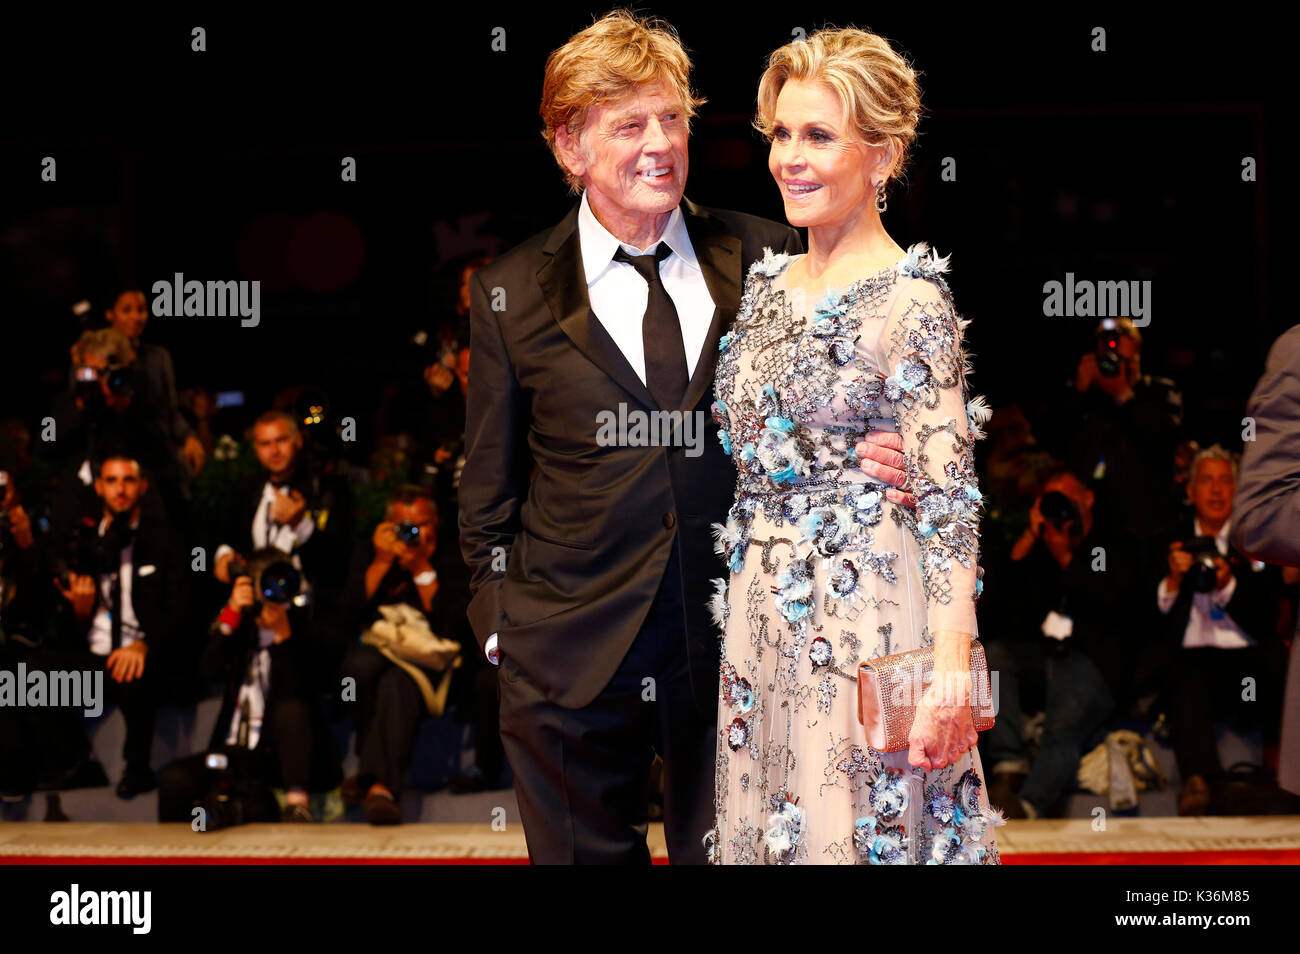 Robert Redford and Jane Fonda attending the 'Our Souls at Night' premiere at the 74th Venice International Film Foto de stock